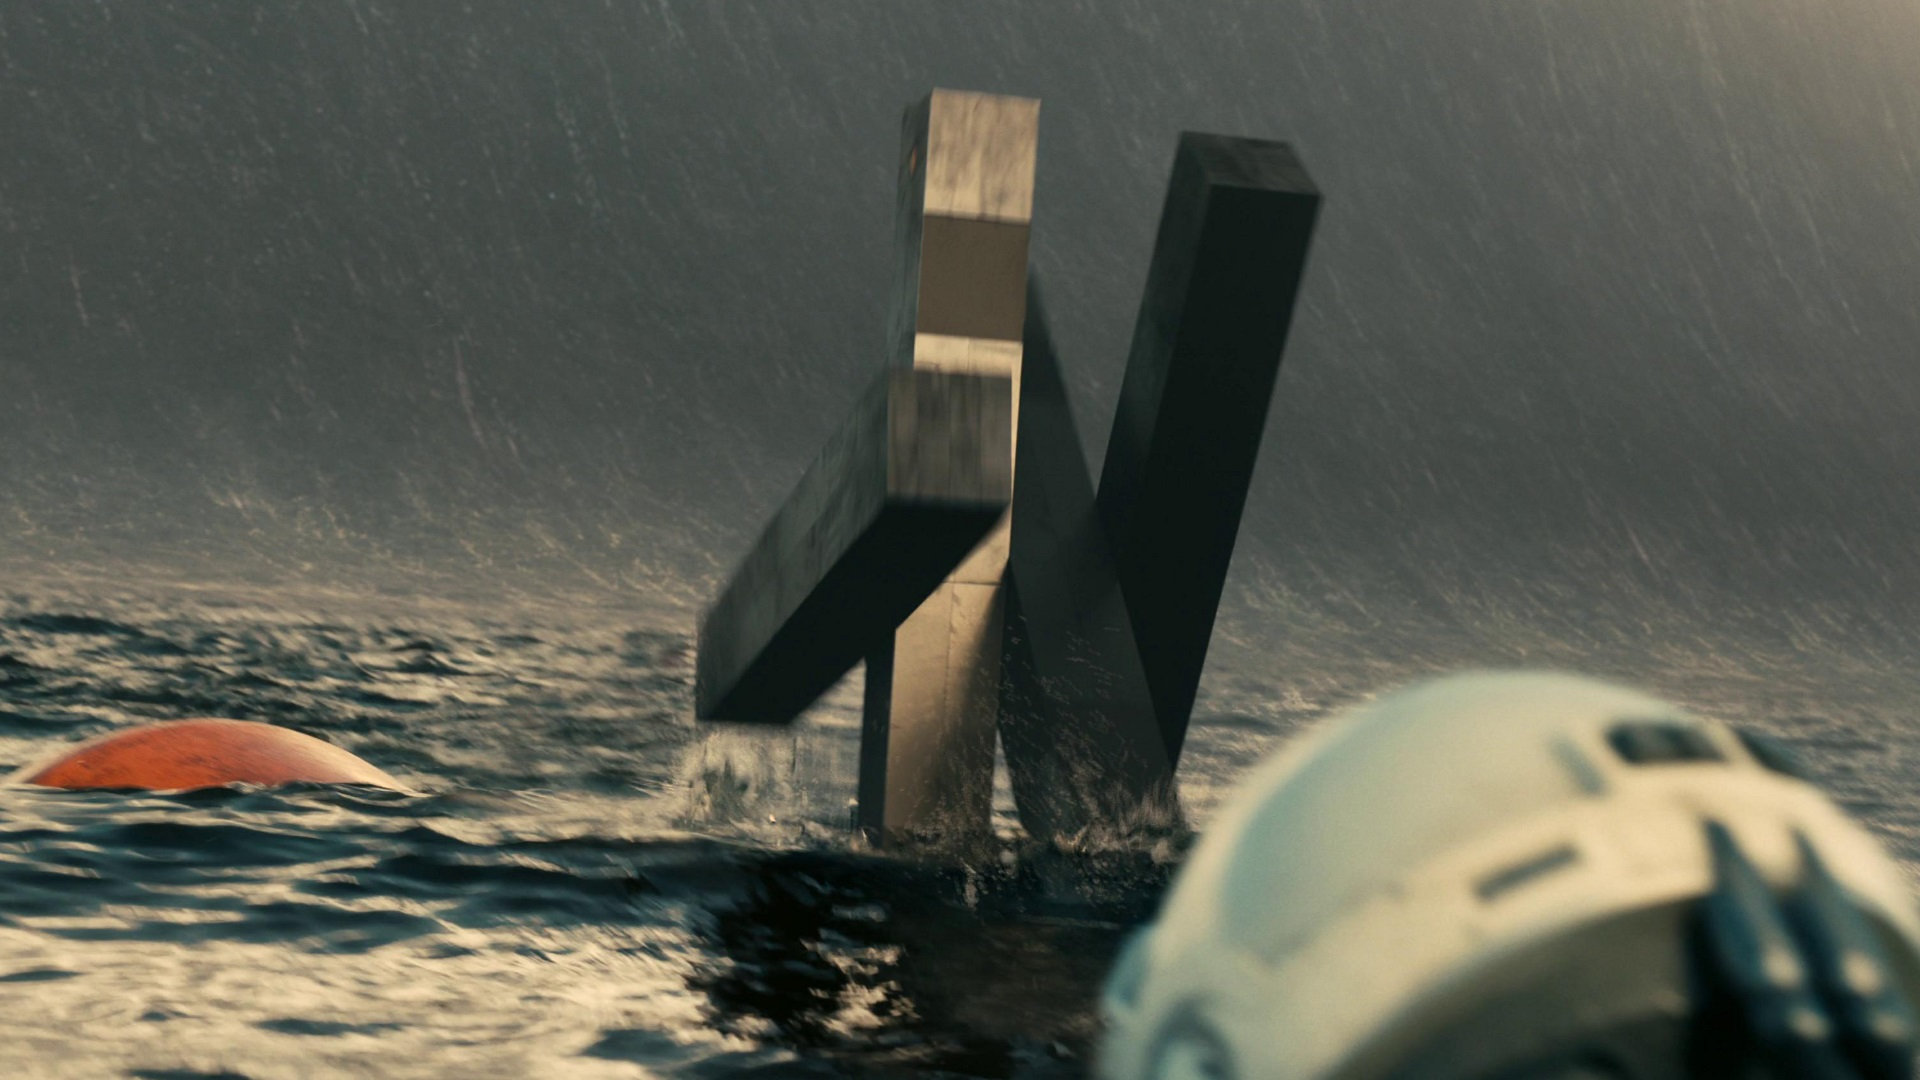 """Interstellar"" (2014) - Best Visual Effects Shortlisted - We Live Film"